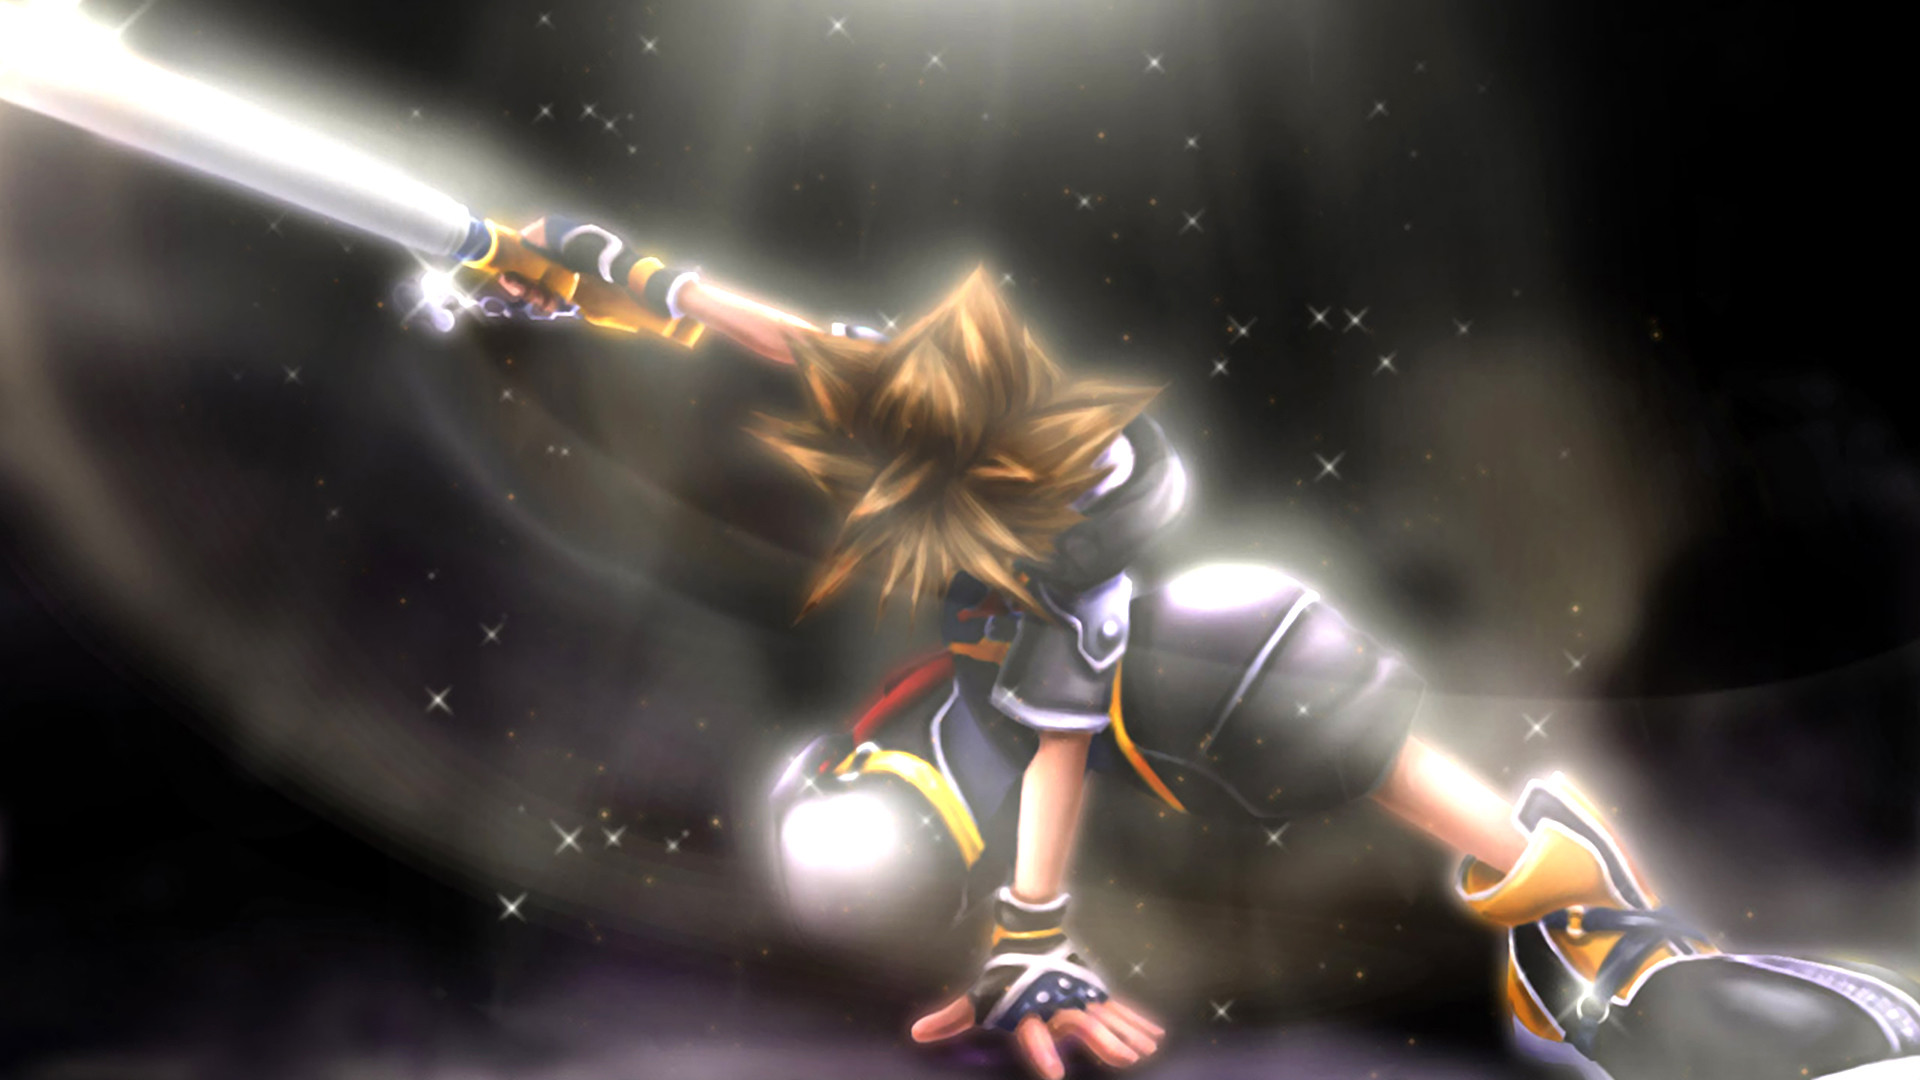 Res: 1920x1080, Kingdom Hearts Wallpaper HD